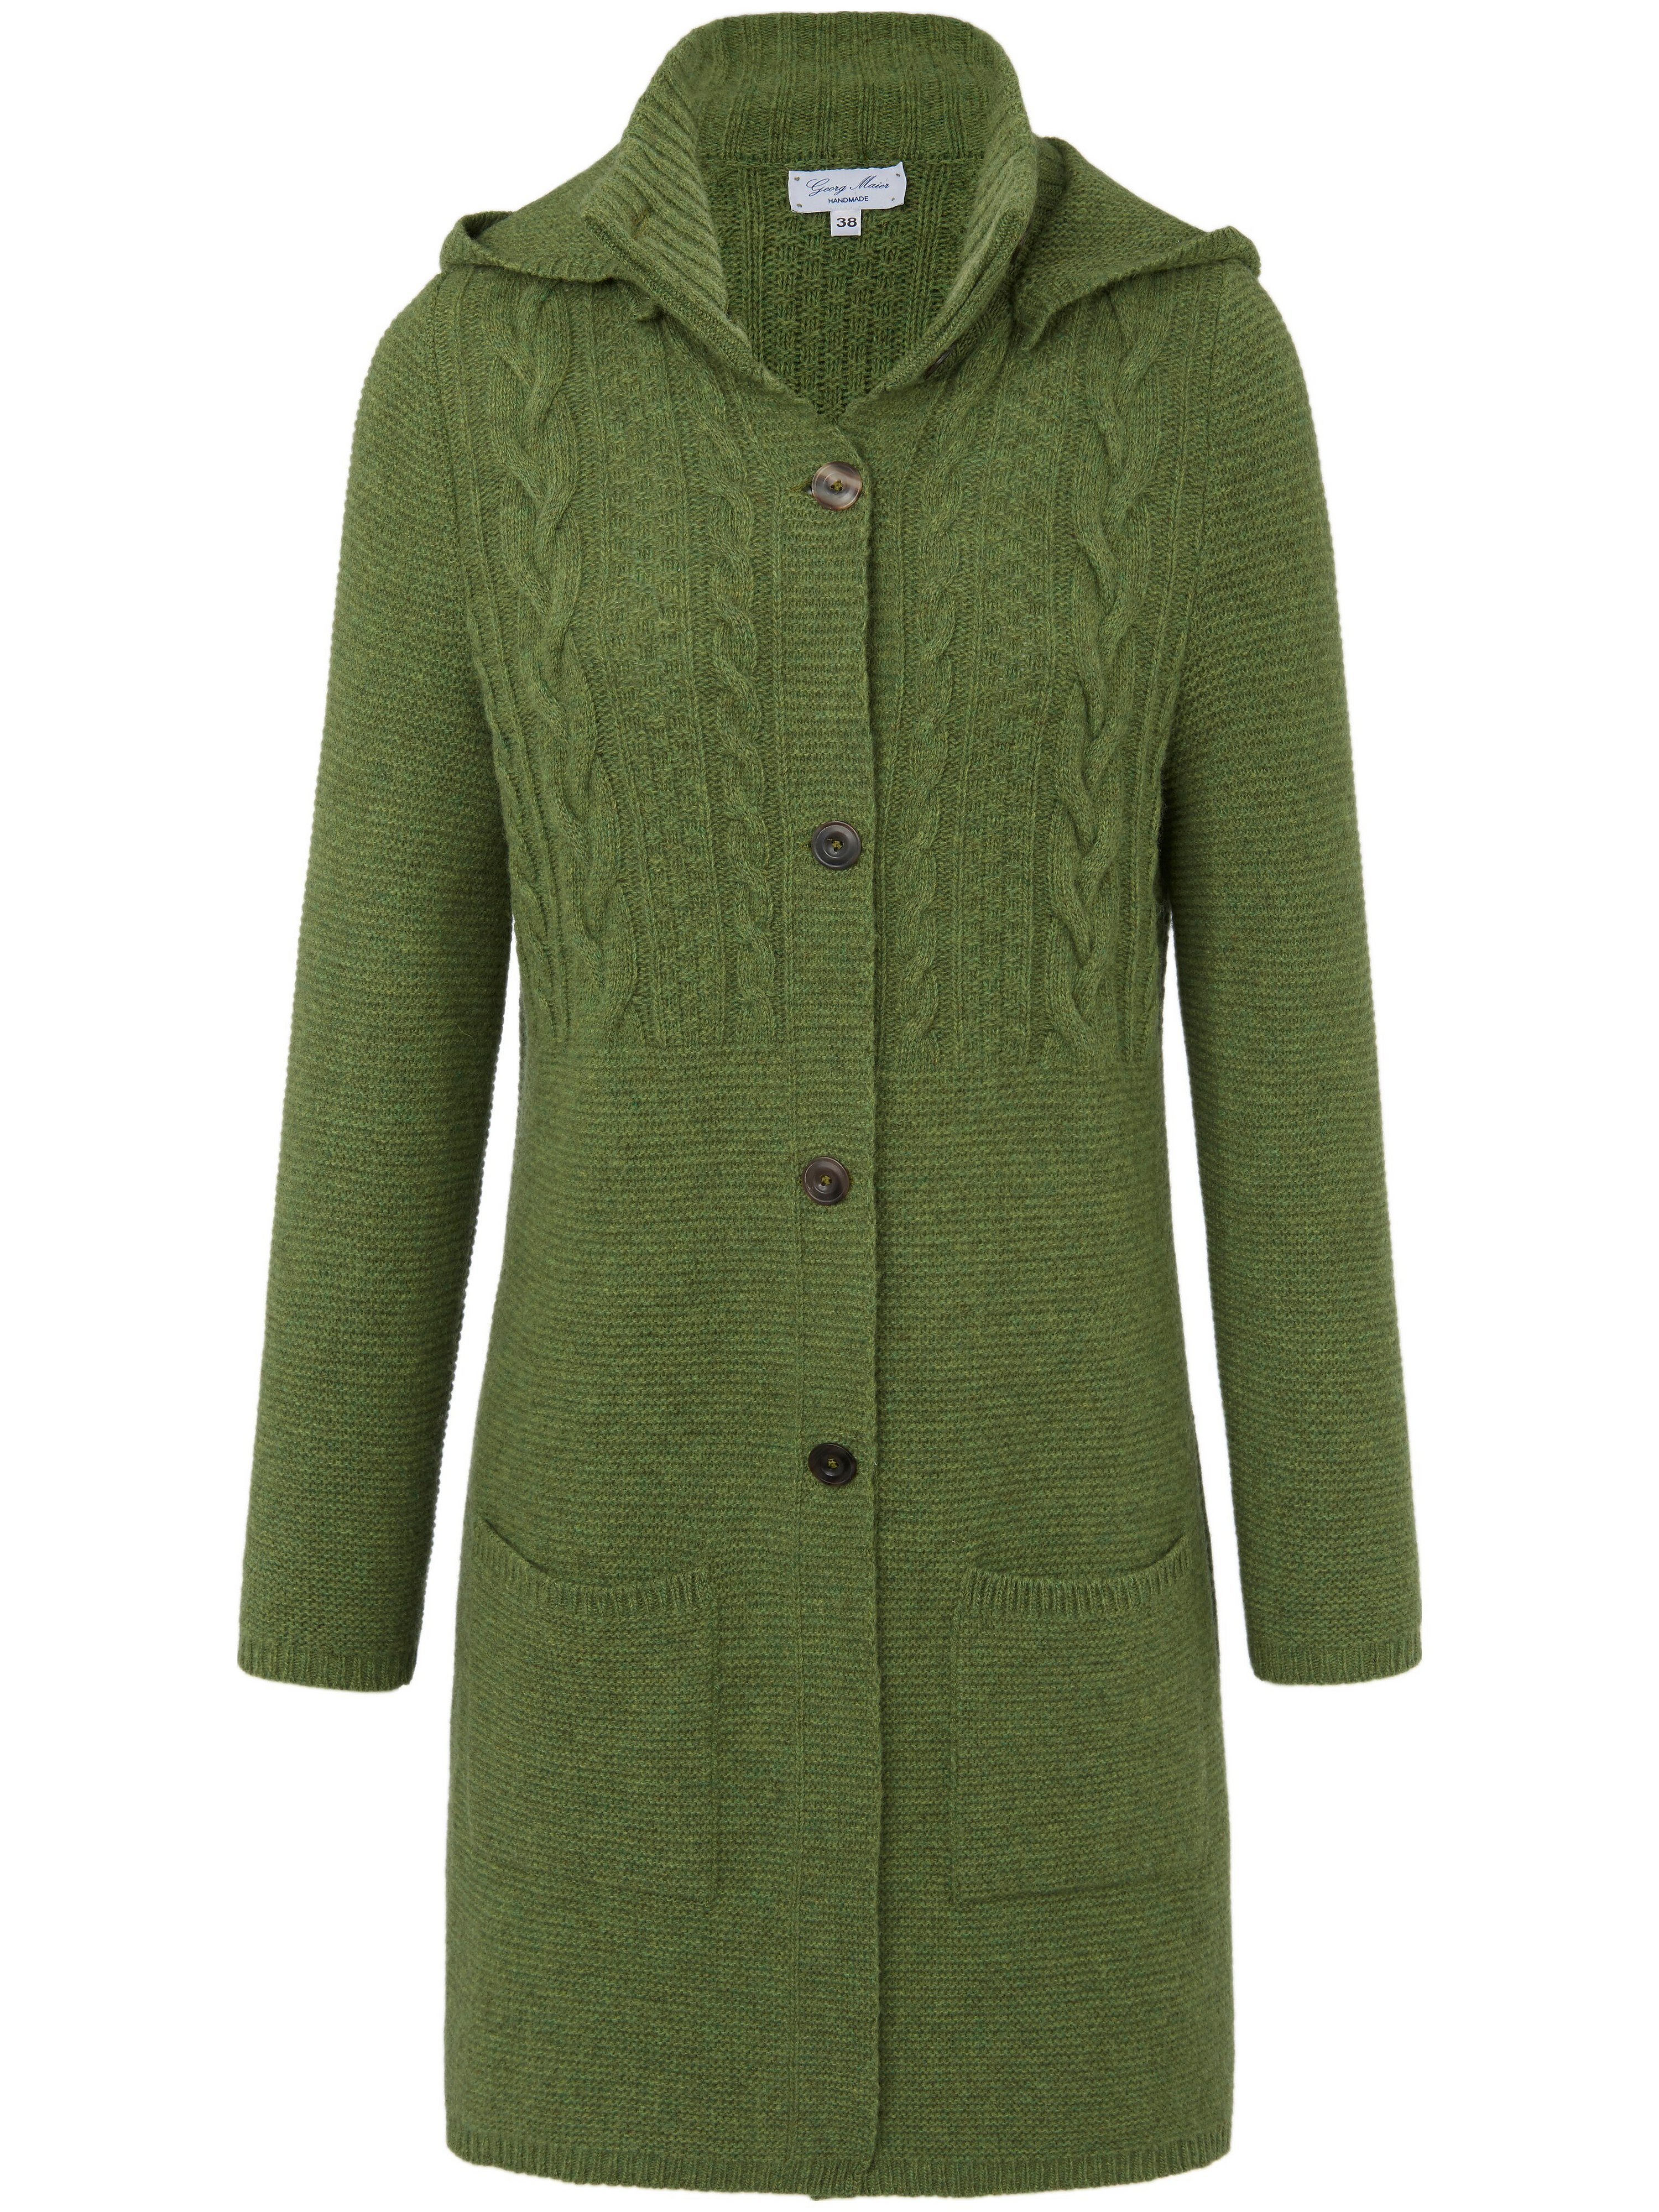 Le manteau maille 100% laine vierge  Georg Maier vert taille 44